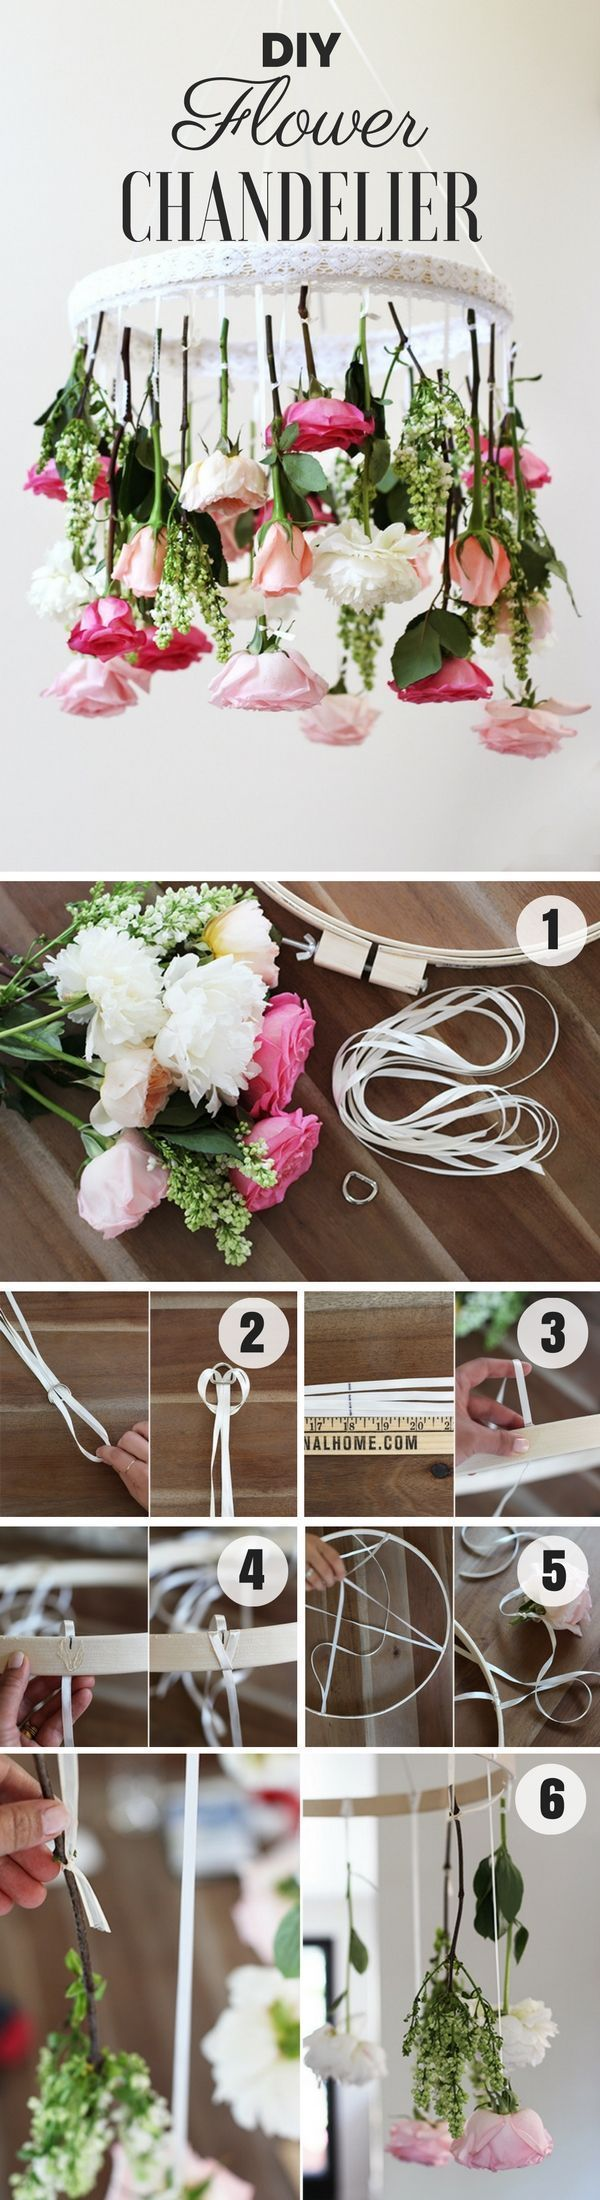 Check out how to make an easy shabby chic diy flower chandelier check out how to make an easy shabby chic diy flower chandelier homedecorideas arubaitofo Image collections